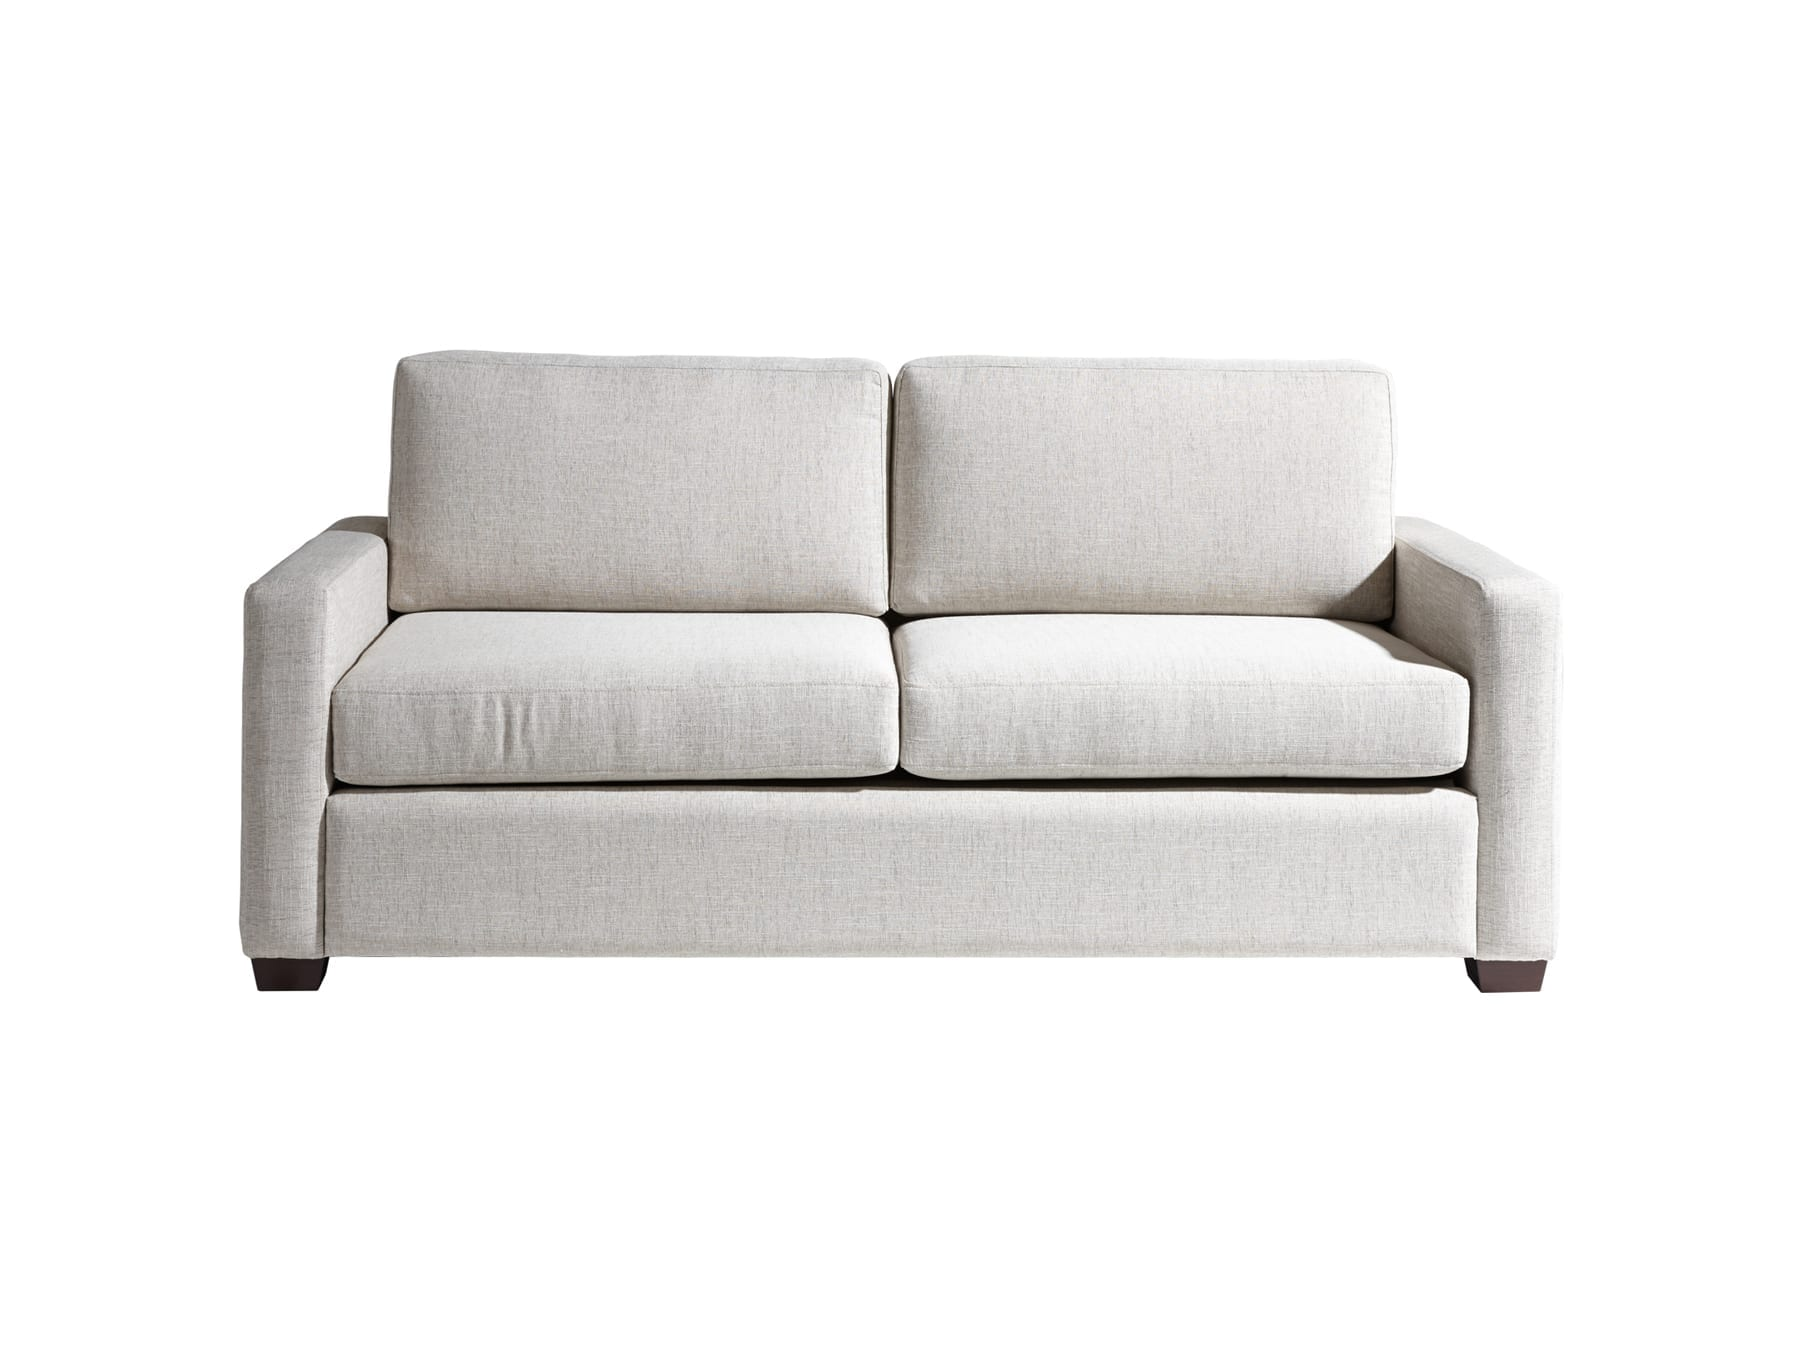 Sofa Beds Online Nz Jade Furniture Mckenzie Willis